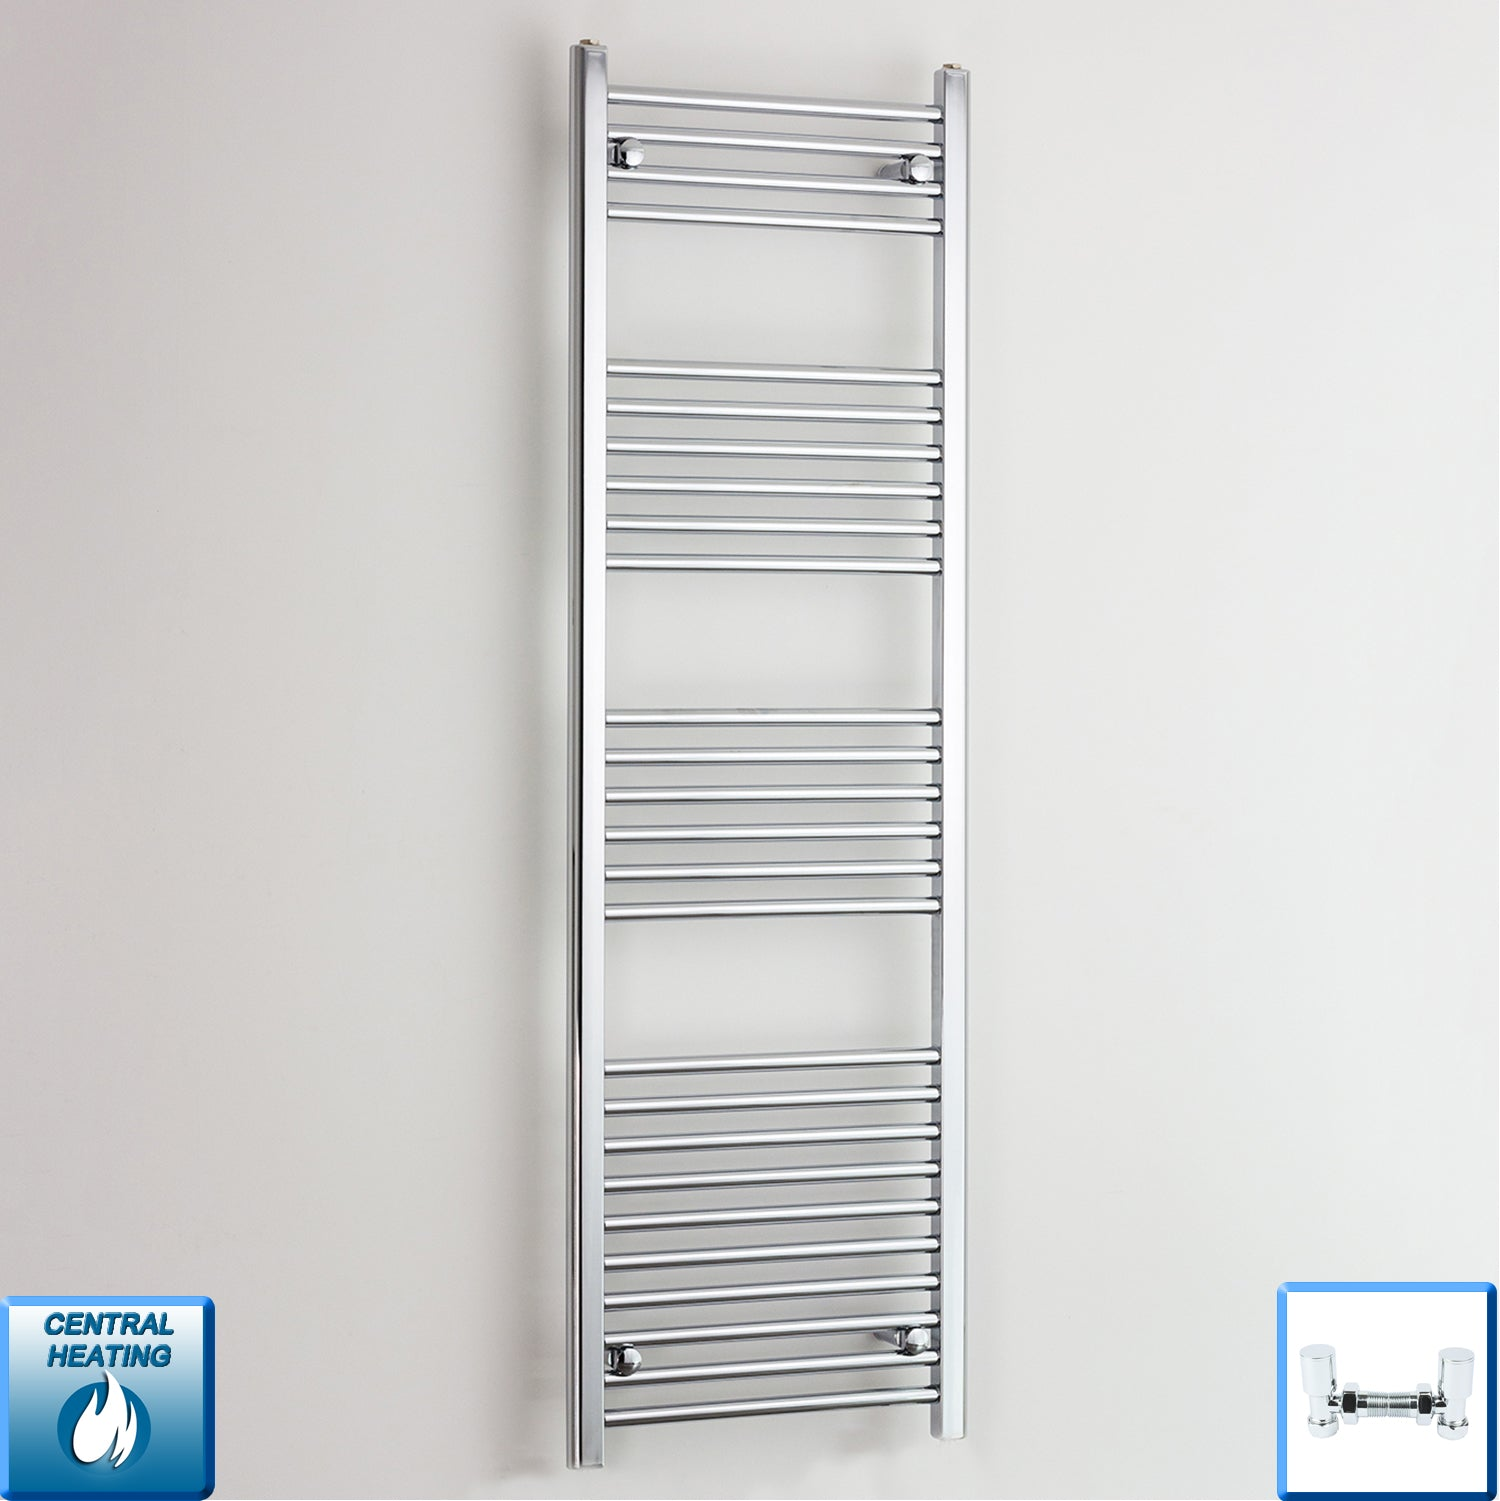 600mm Wide 1600mm High Flat Chrome Heated Towel Rail Radiator HTR,With Angled Valve